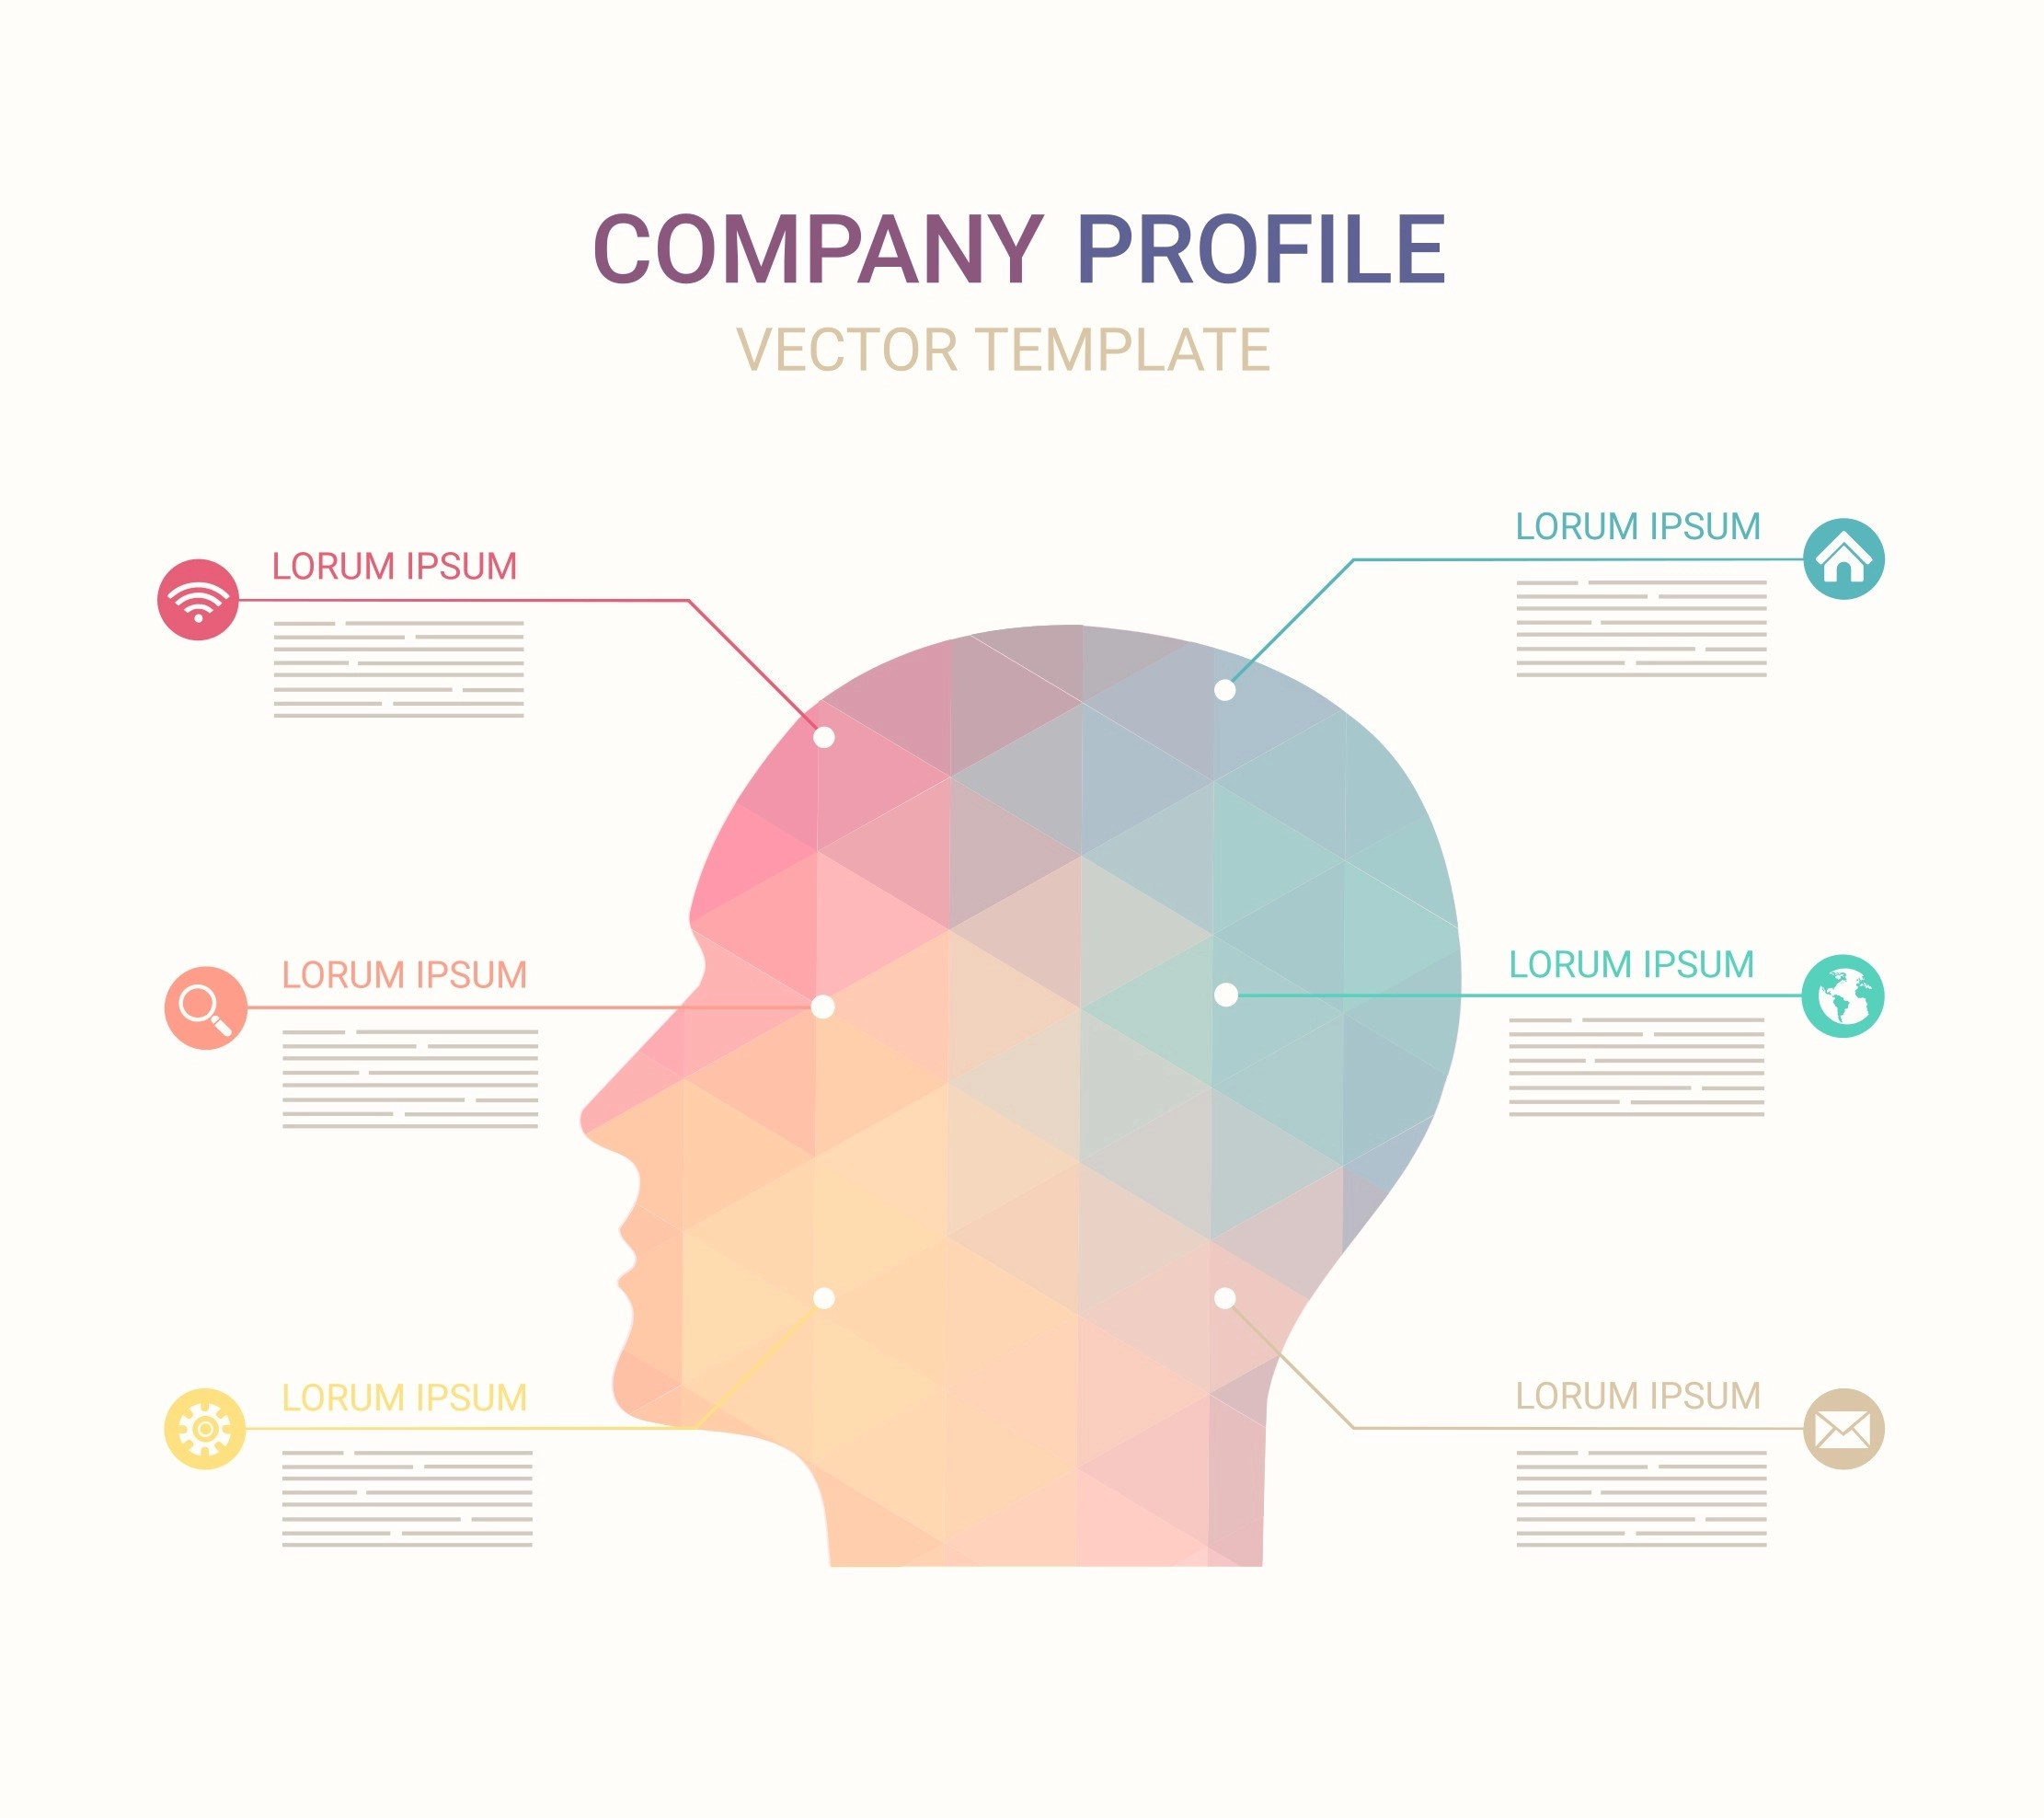 Wtwh Media Llc Free Vector Company Profile Template Download Free